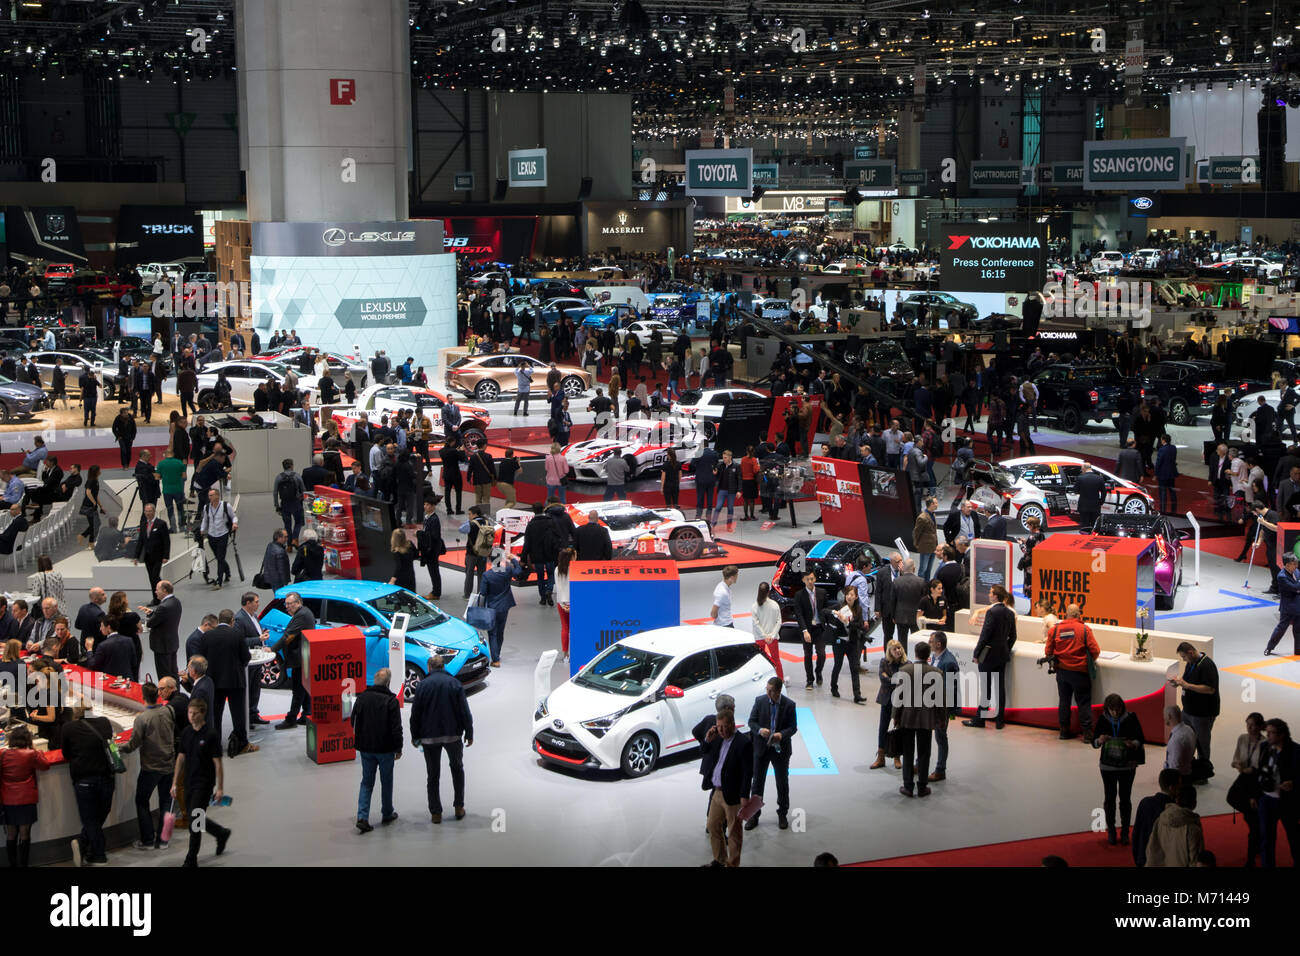 Geneva, Switzerland. 6th March, 2018. Visitors and cars at the 88th Geneva International Motor Show. Credit: JLBvdWOLF/Alamy - Stock Image